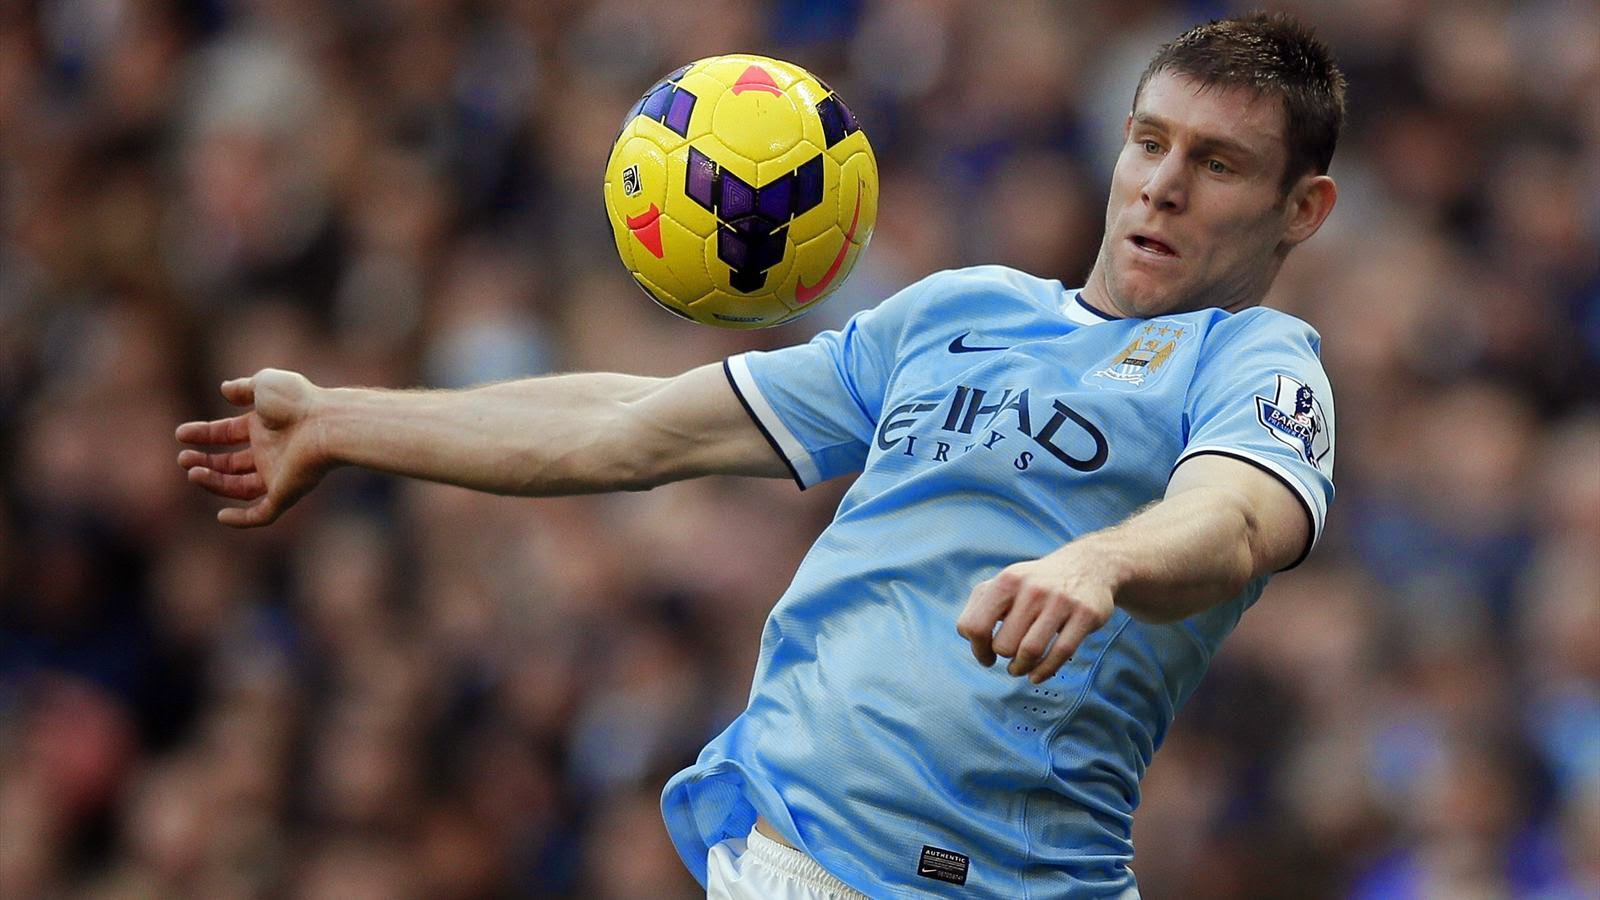 Pronostic Stoke City - Manchester City : Premier League